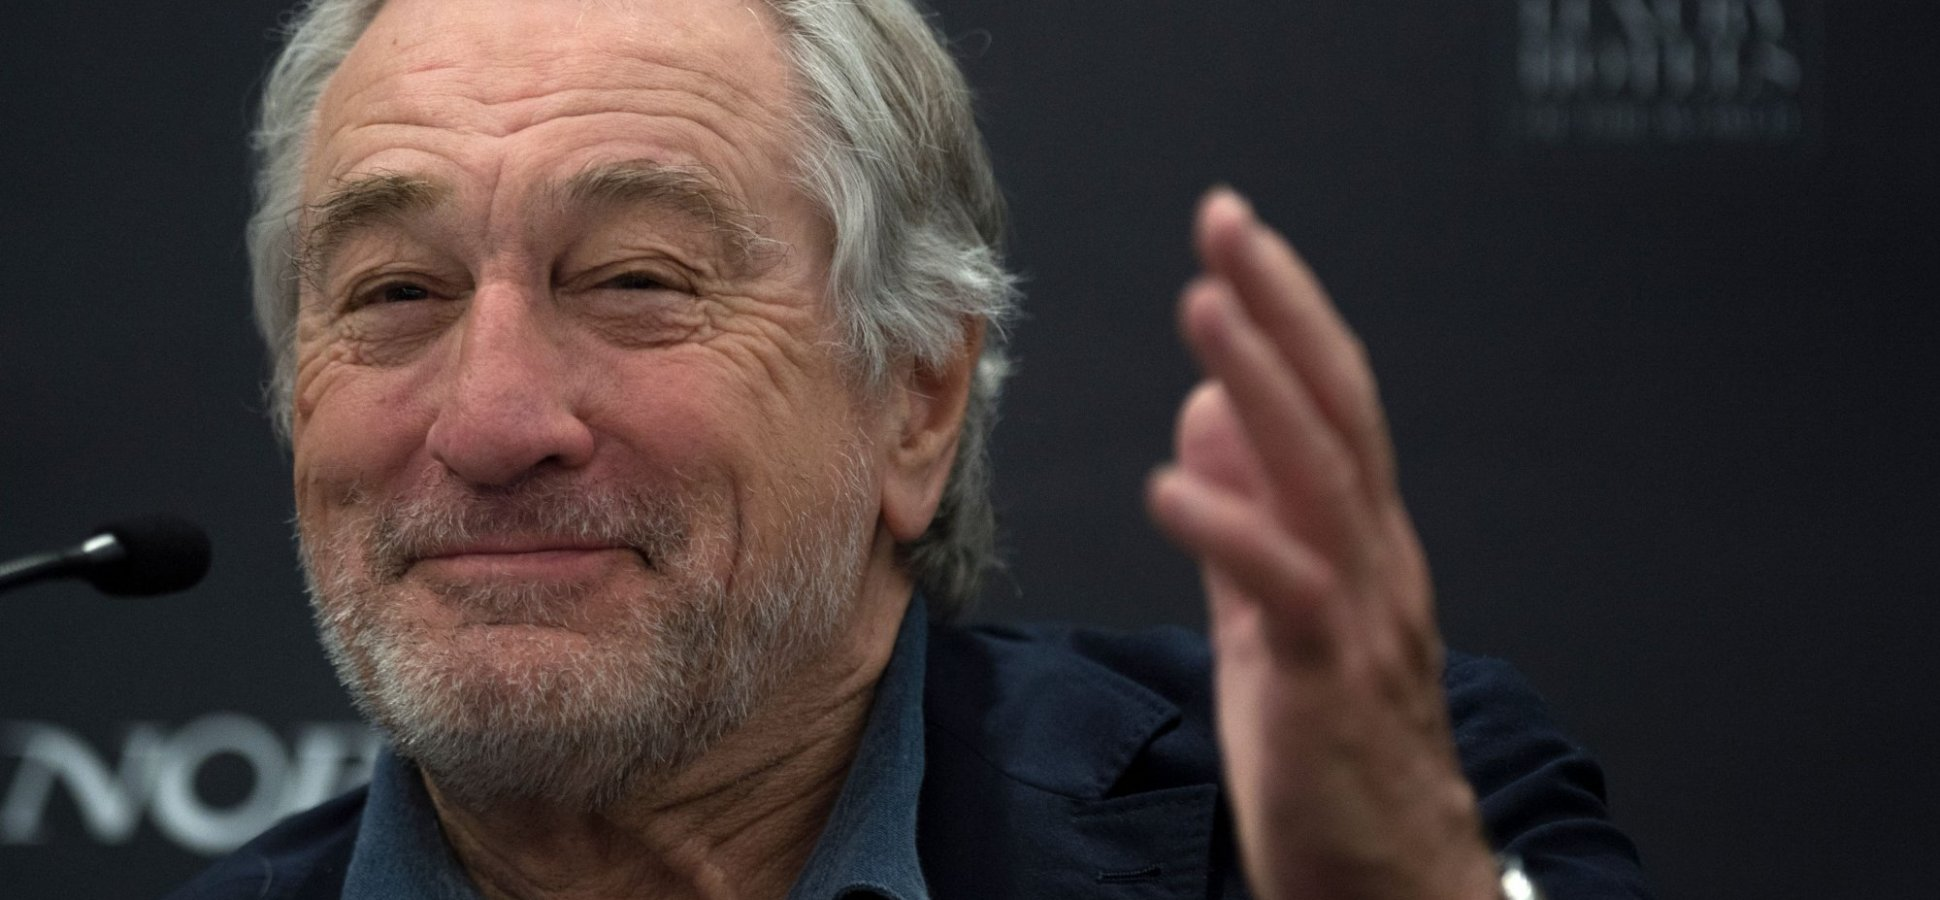 What Robert De Niro Taught Me About Crafting an Effective Sales Pitch